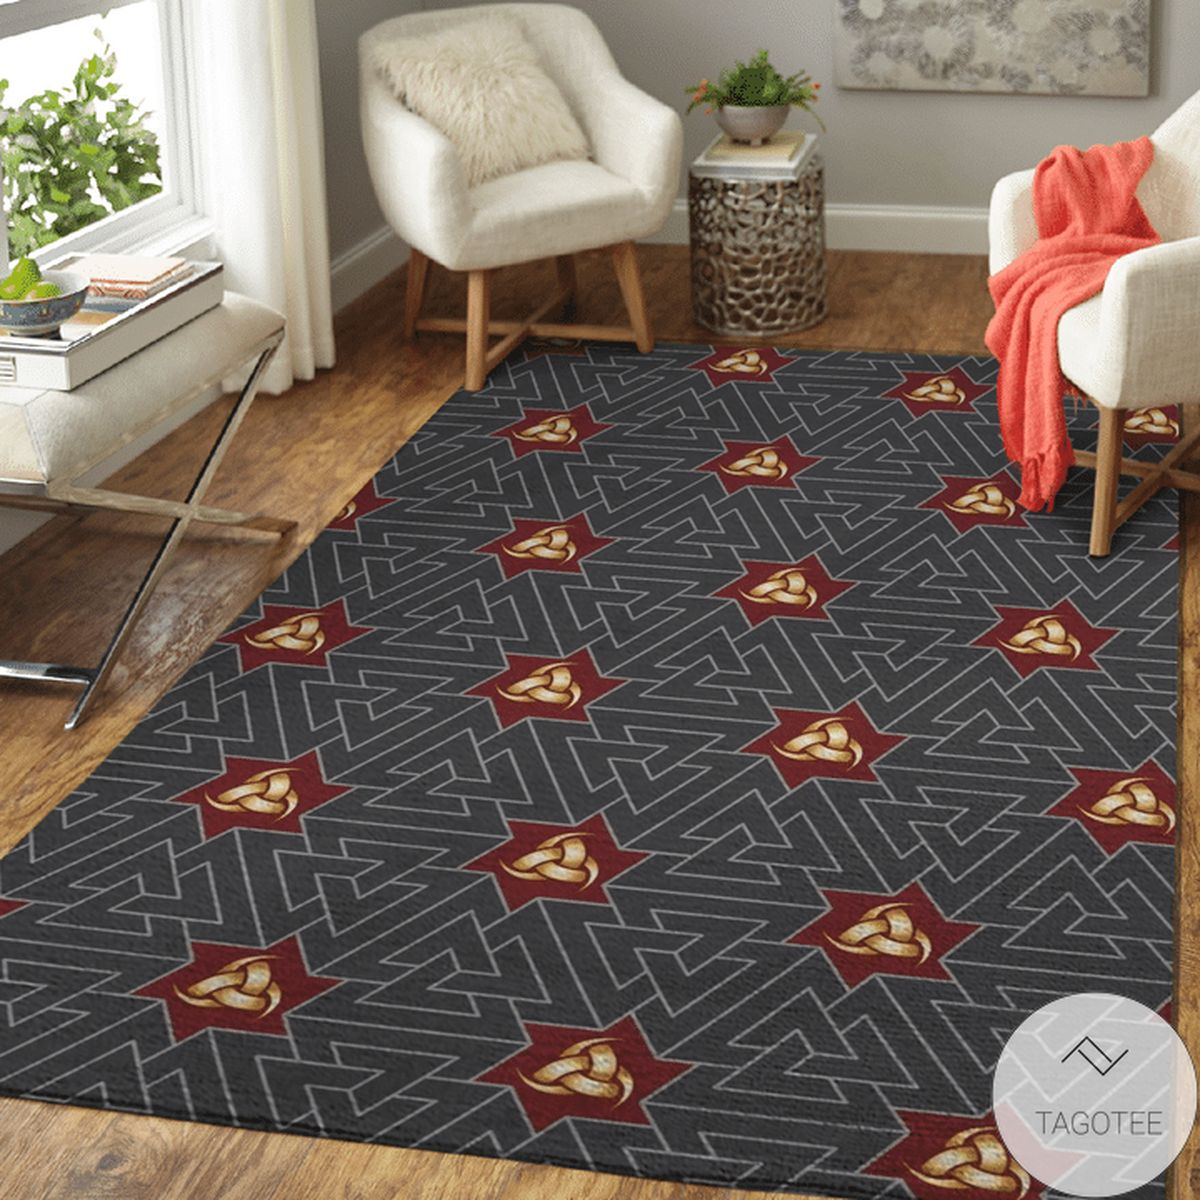 Horns Of Odin And Valknut Viking Area Rug